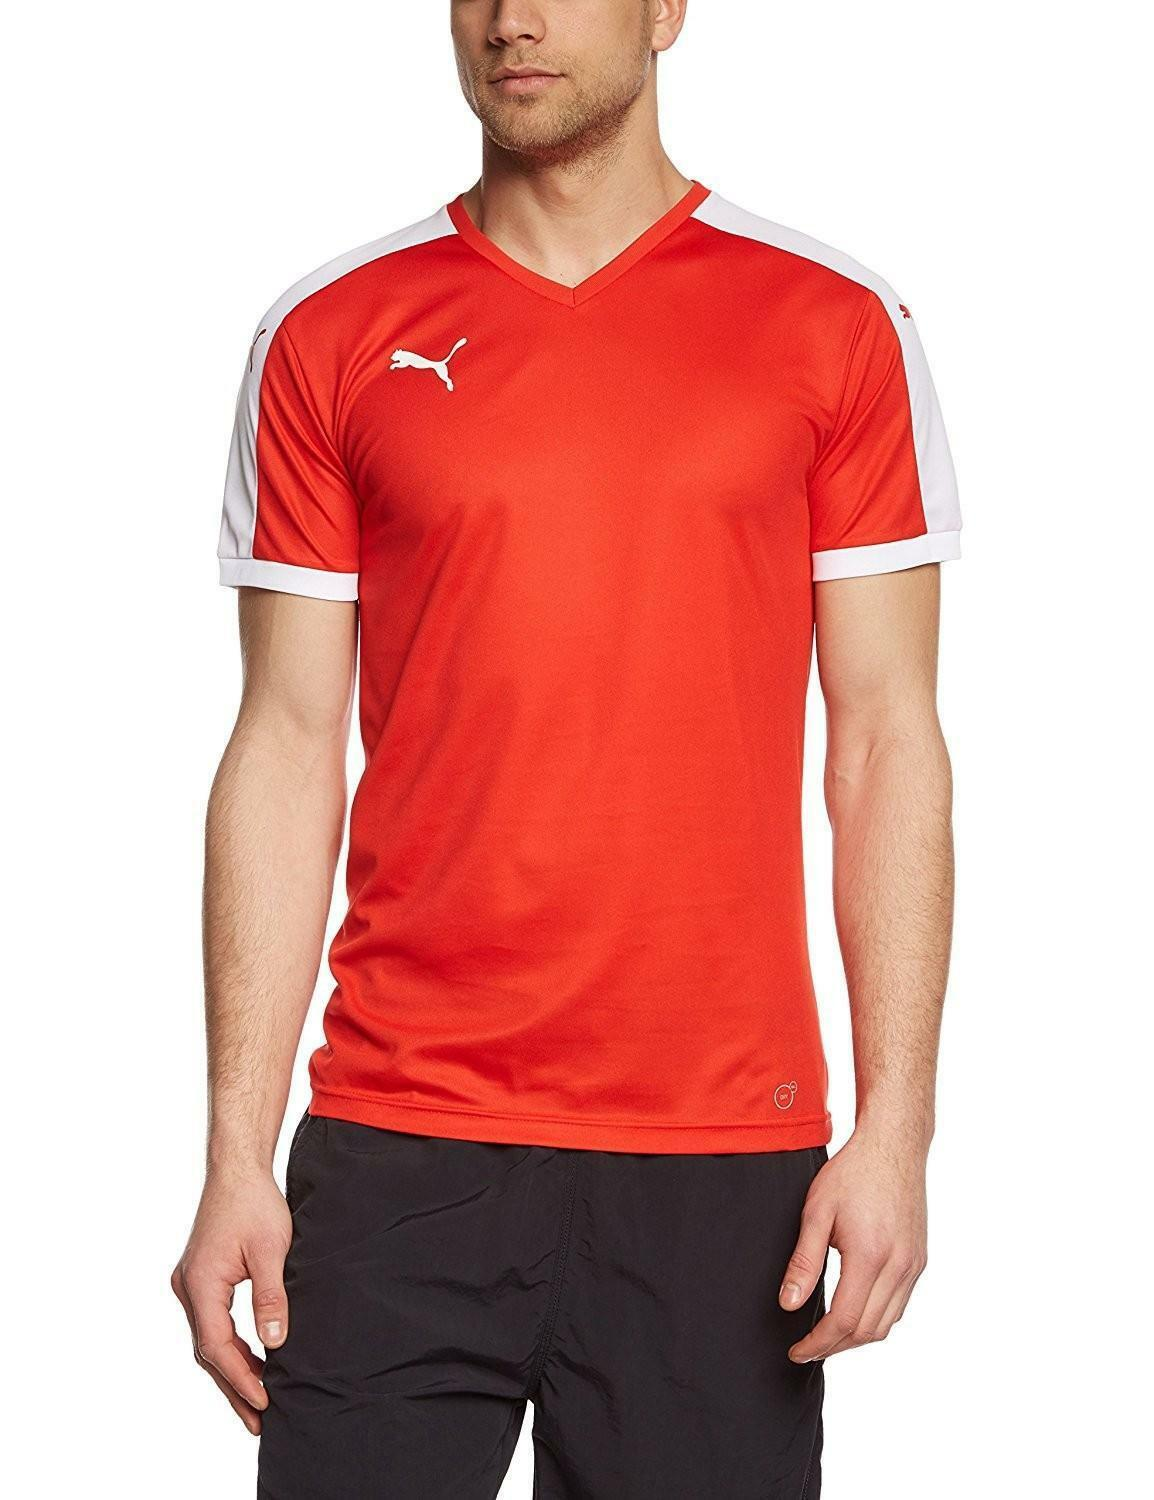 puma puma pitch team t-shirt uomo rossa 70207001